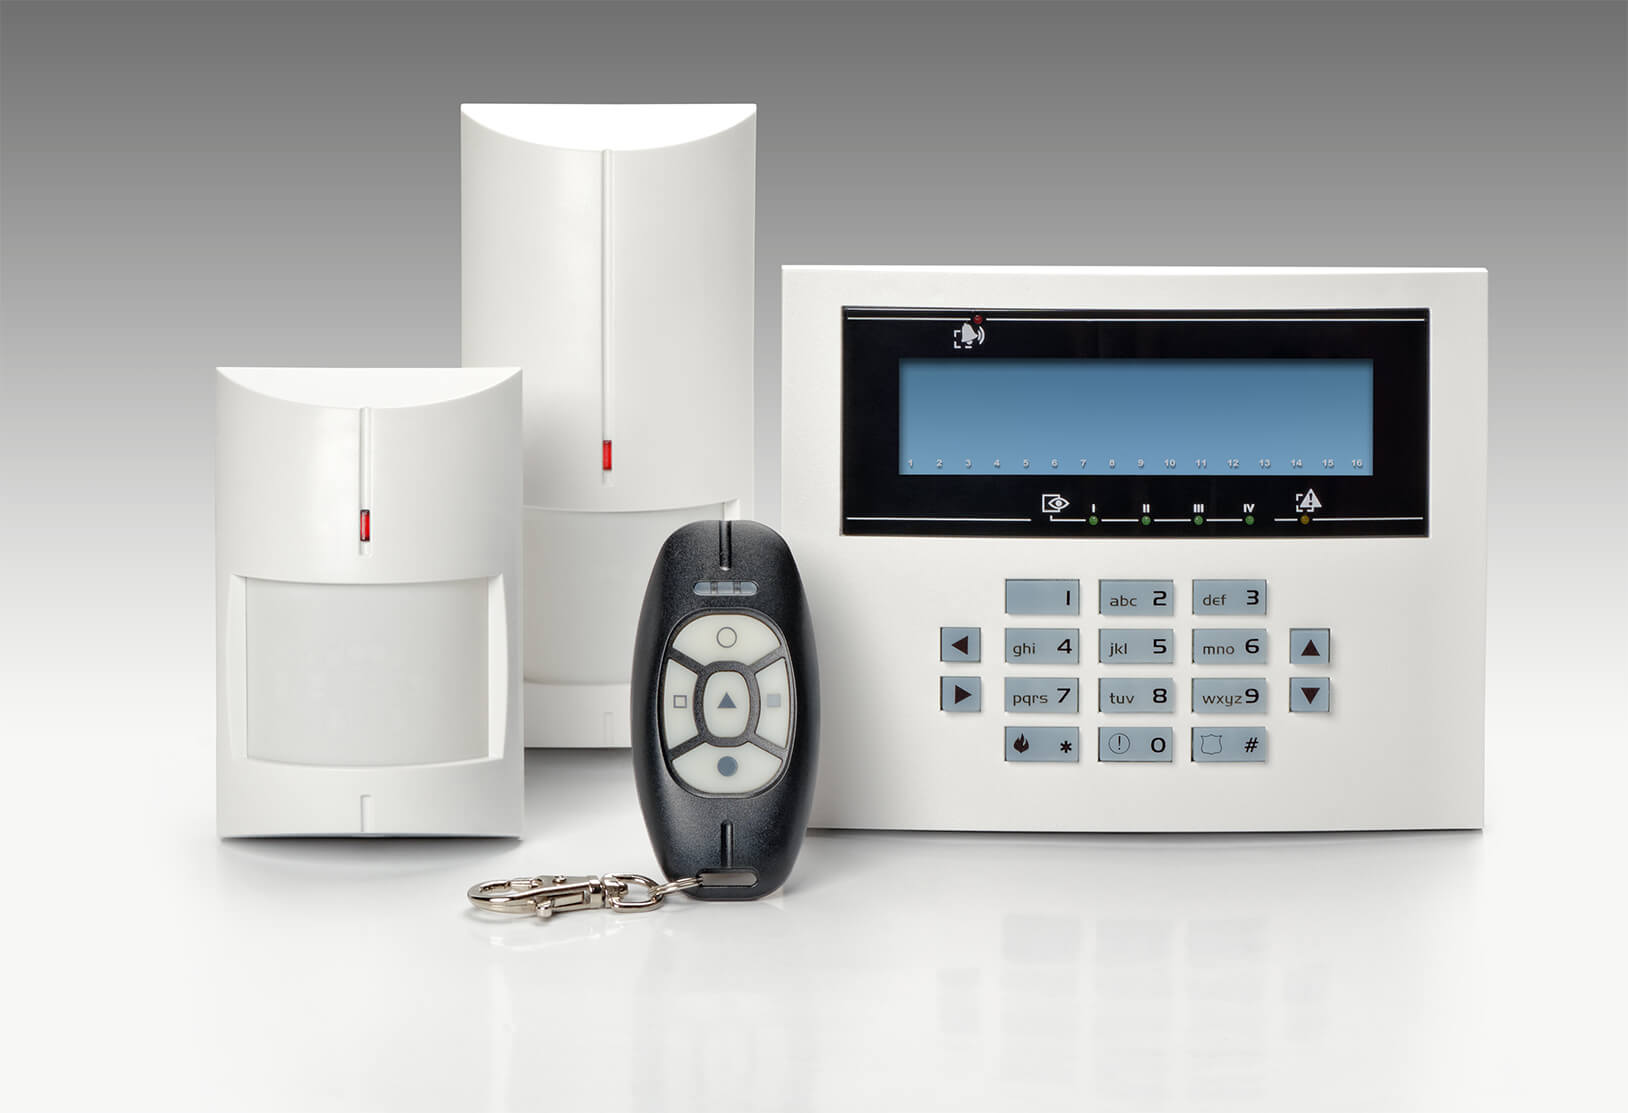 Business & Residential NACOSS Approved Burglar Alarms In Peckham SE15 - Local Peckham SE15 security company.Call 02078872244 - Dedicated to Safety & Security. Companies, shops and homes ..